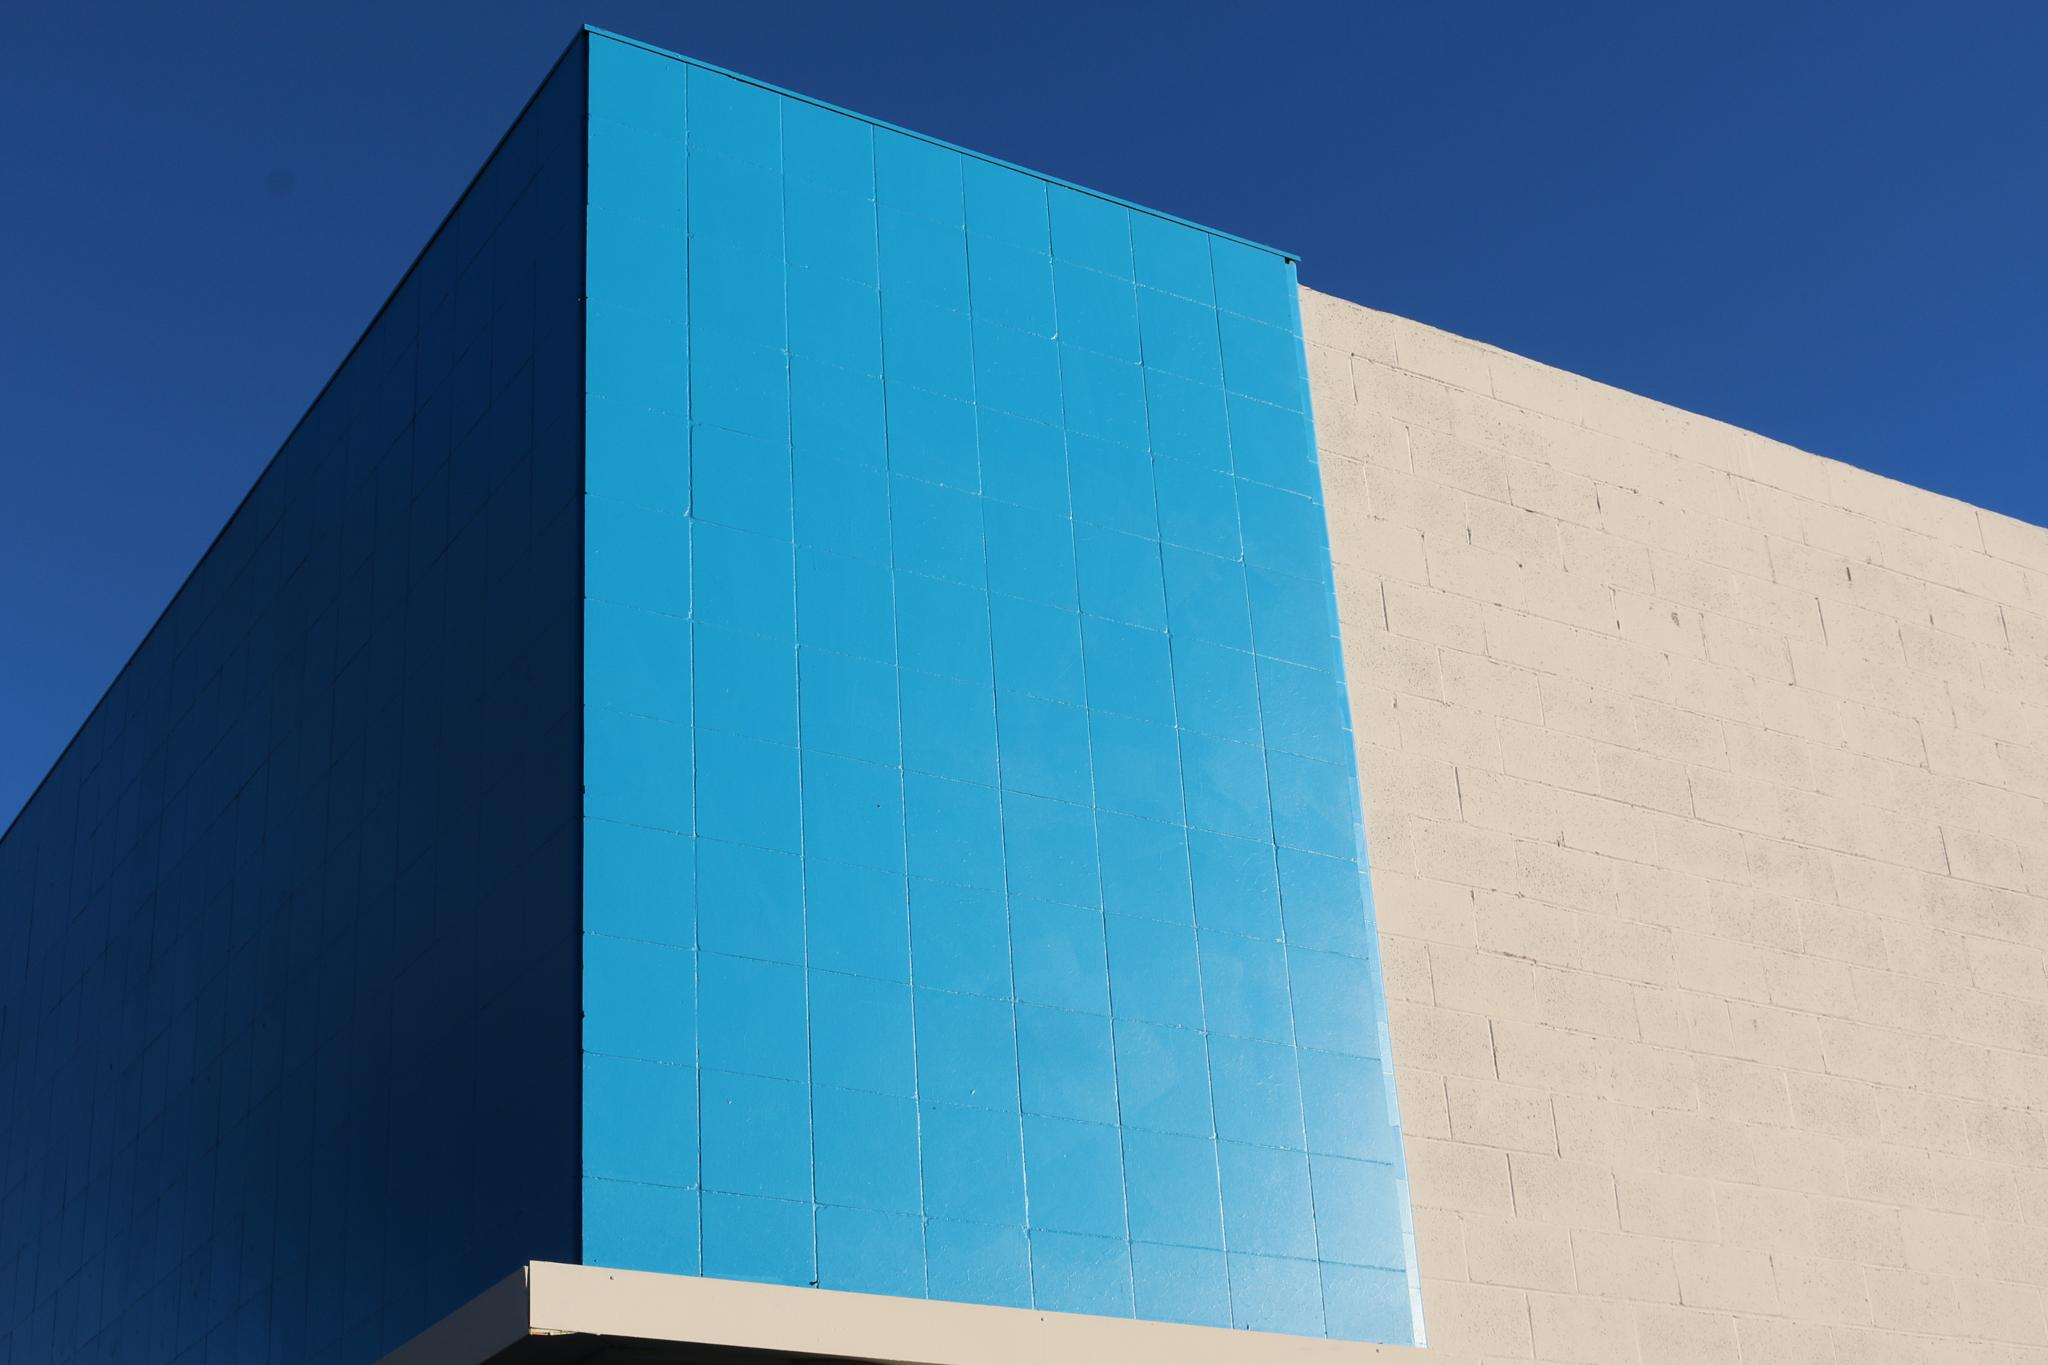 Blue Wall by Tyler Cole